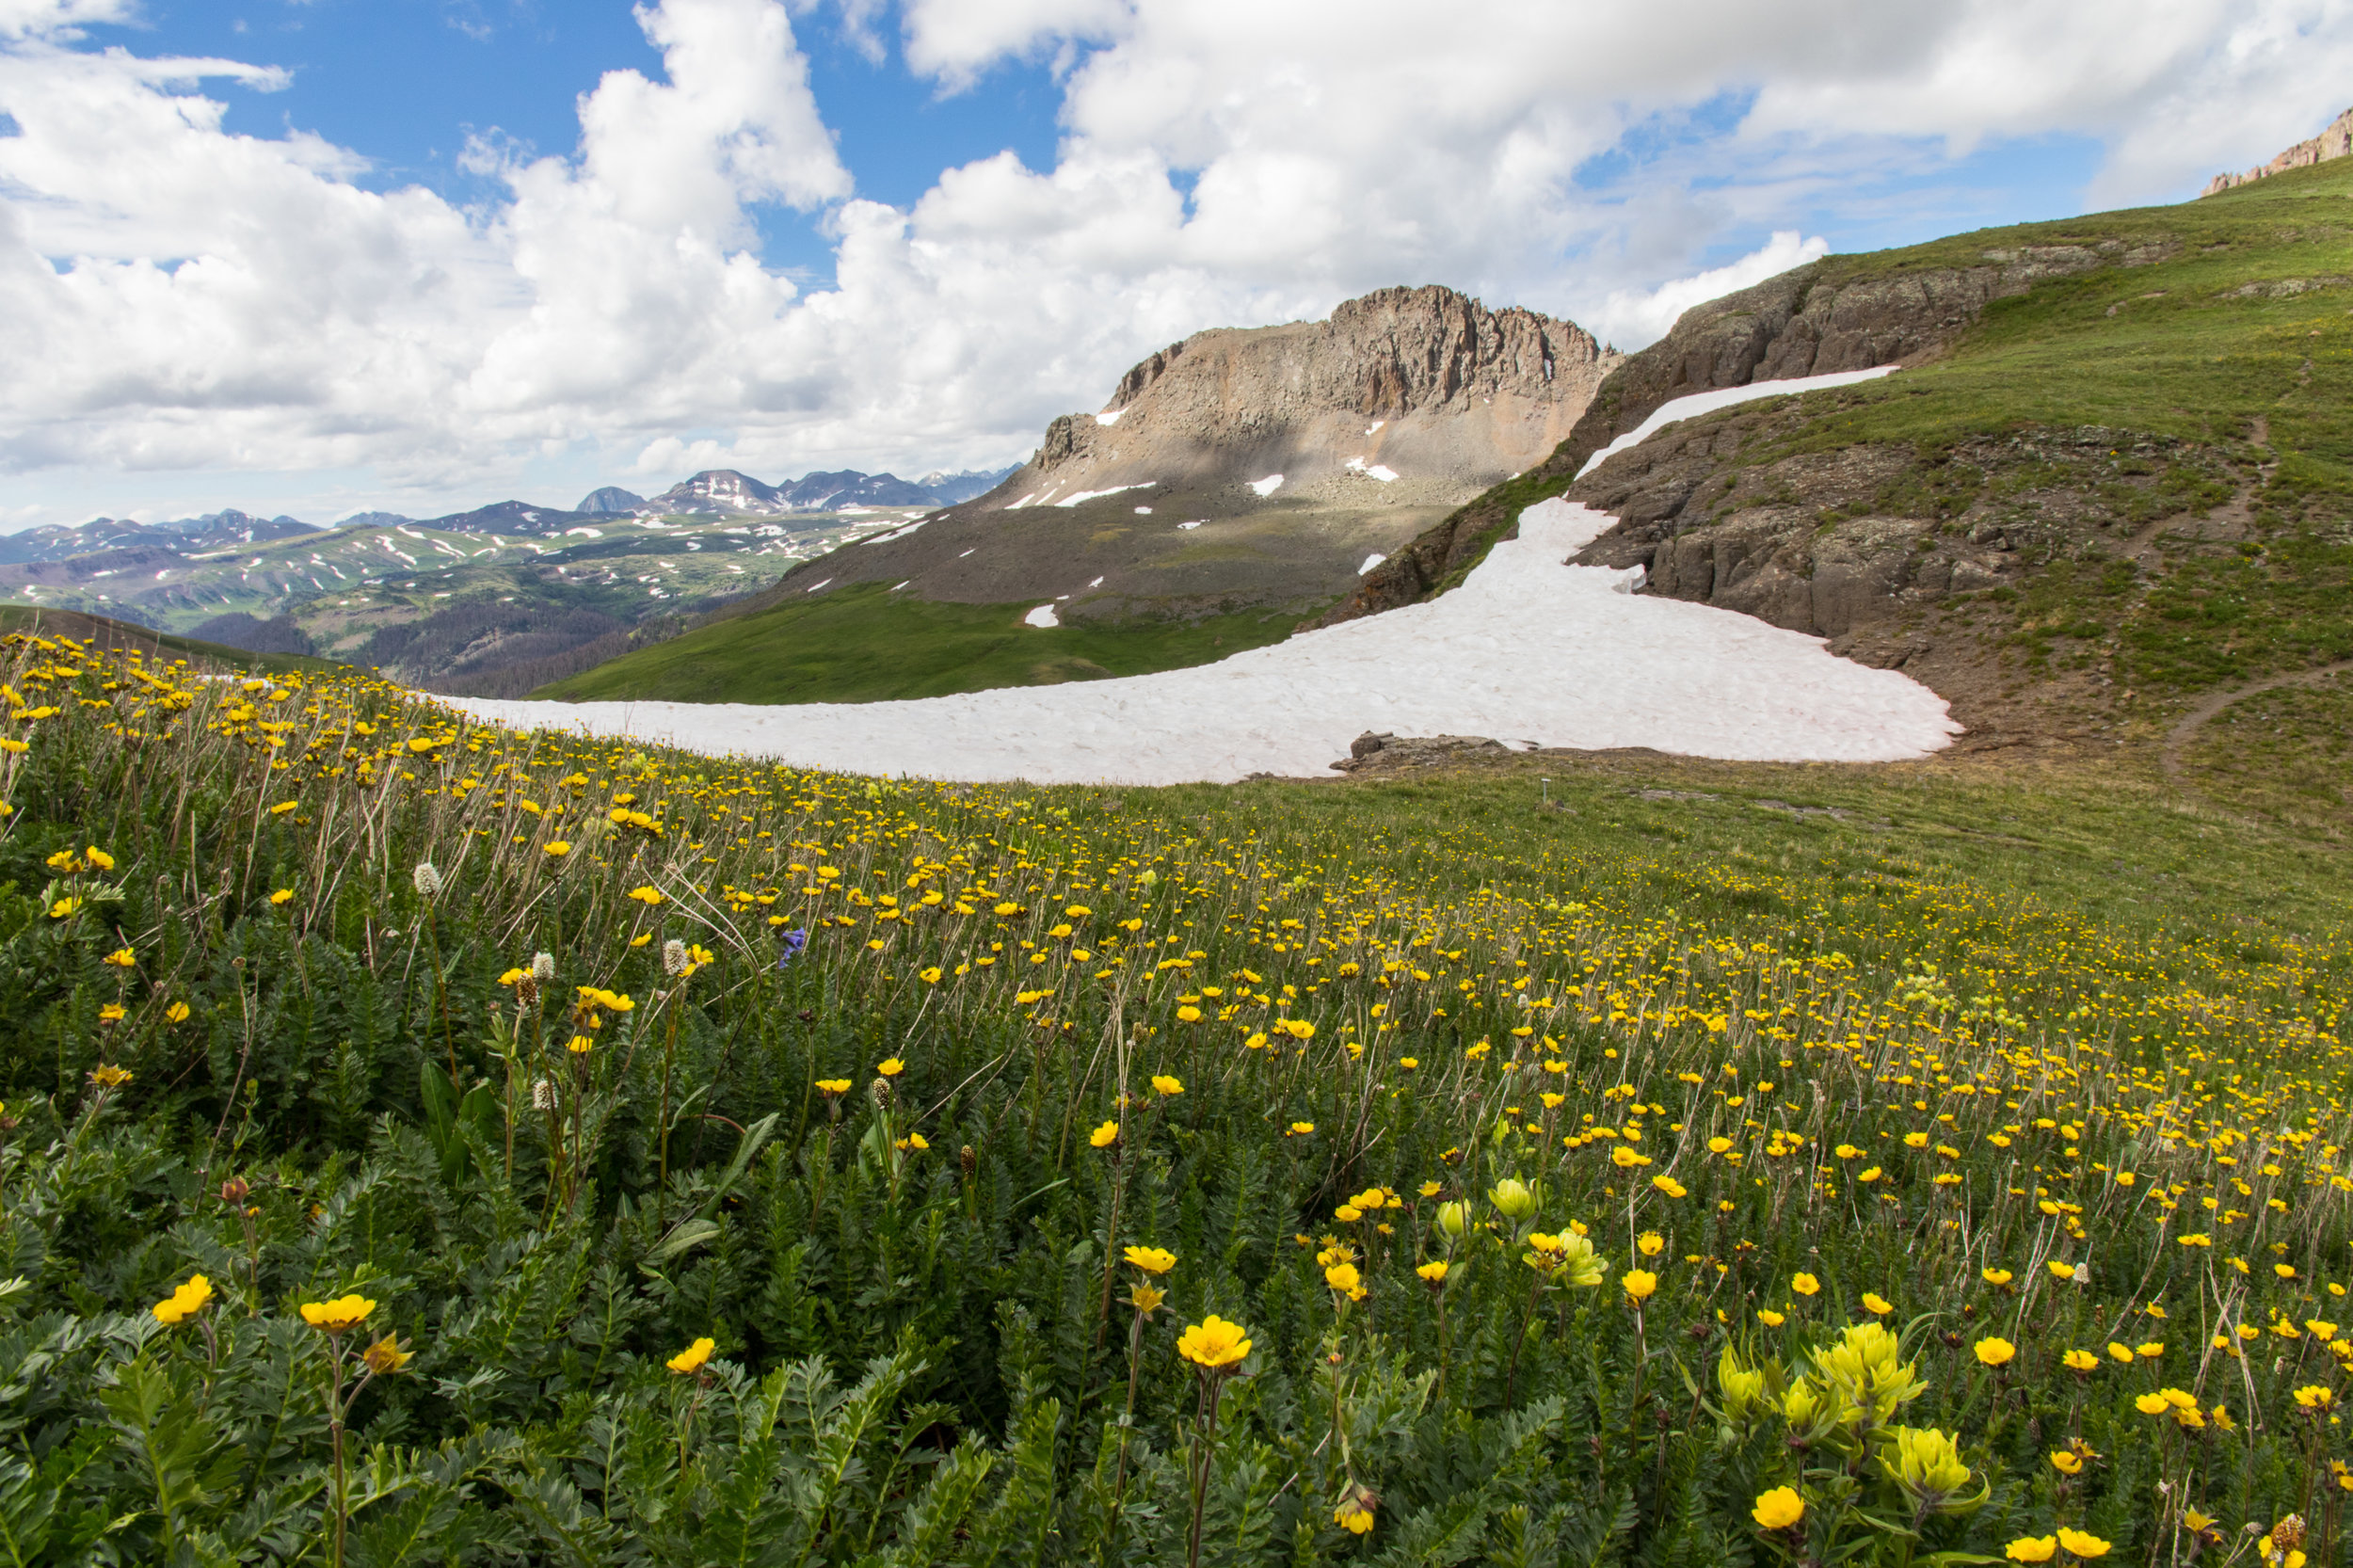 Combination of Snow and Wildflowers on the trail